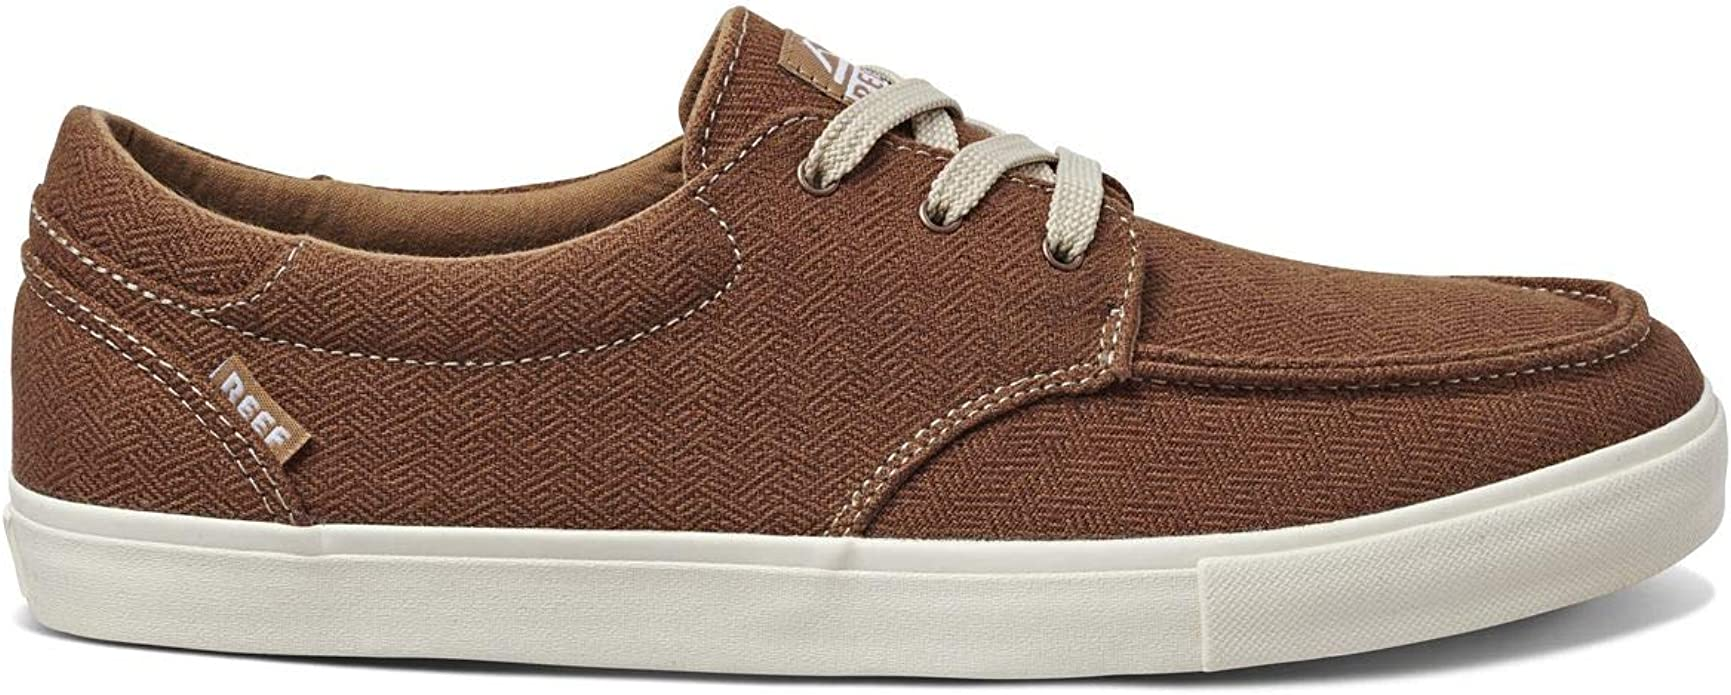 Skate REEF Deckhand 3 Tx Premium Shoes for Men with Classic Styling for Street Or Surf